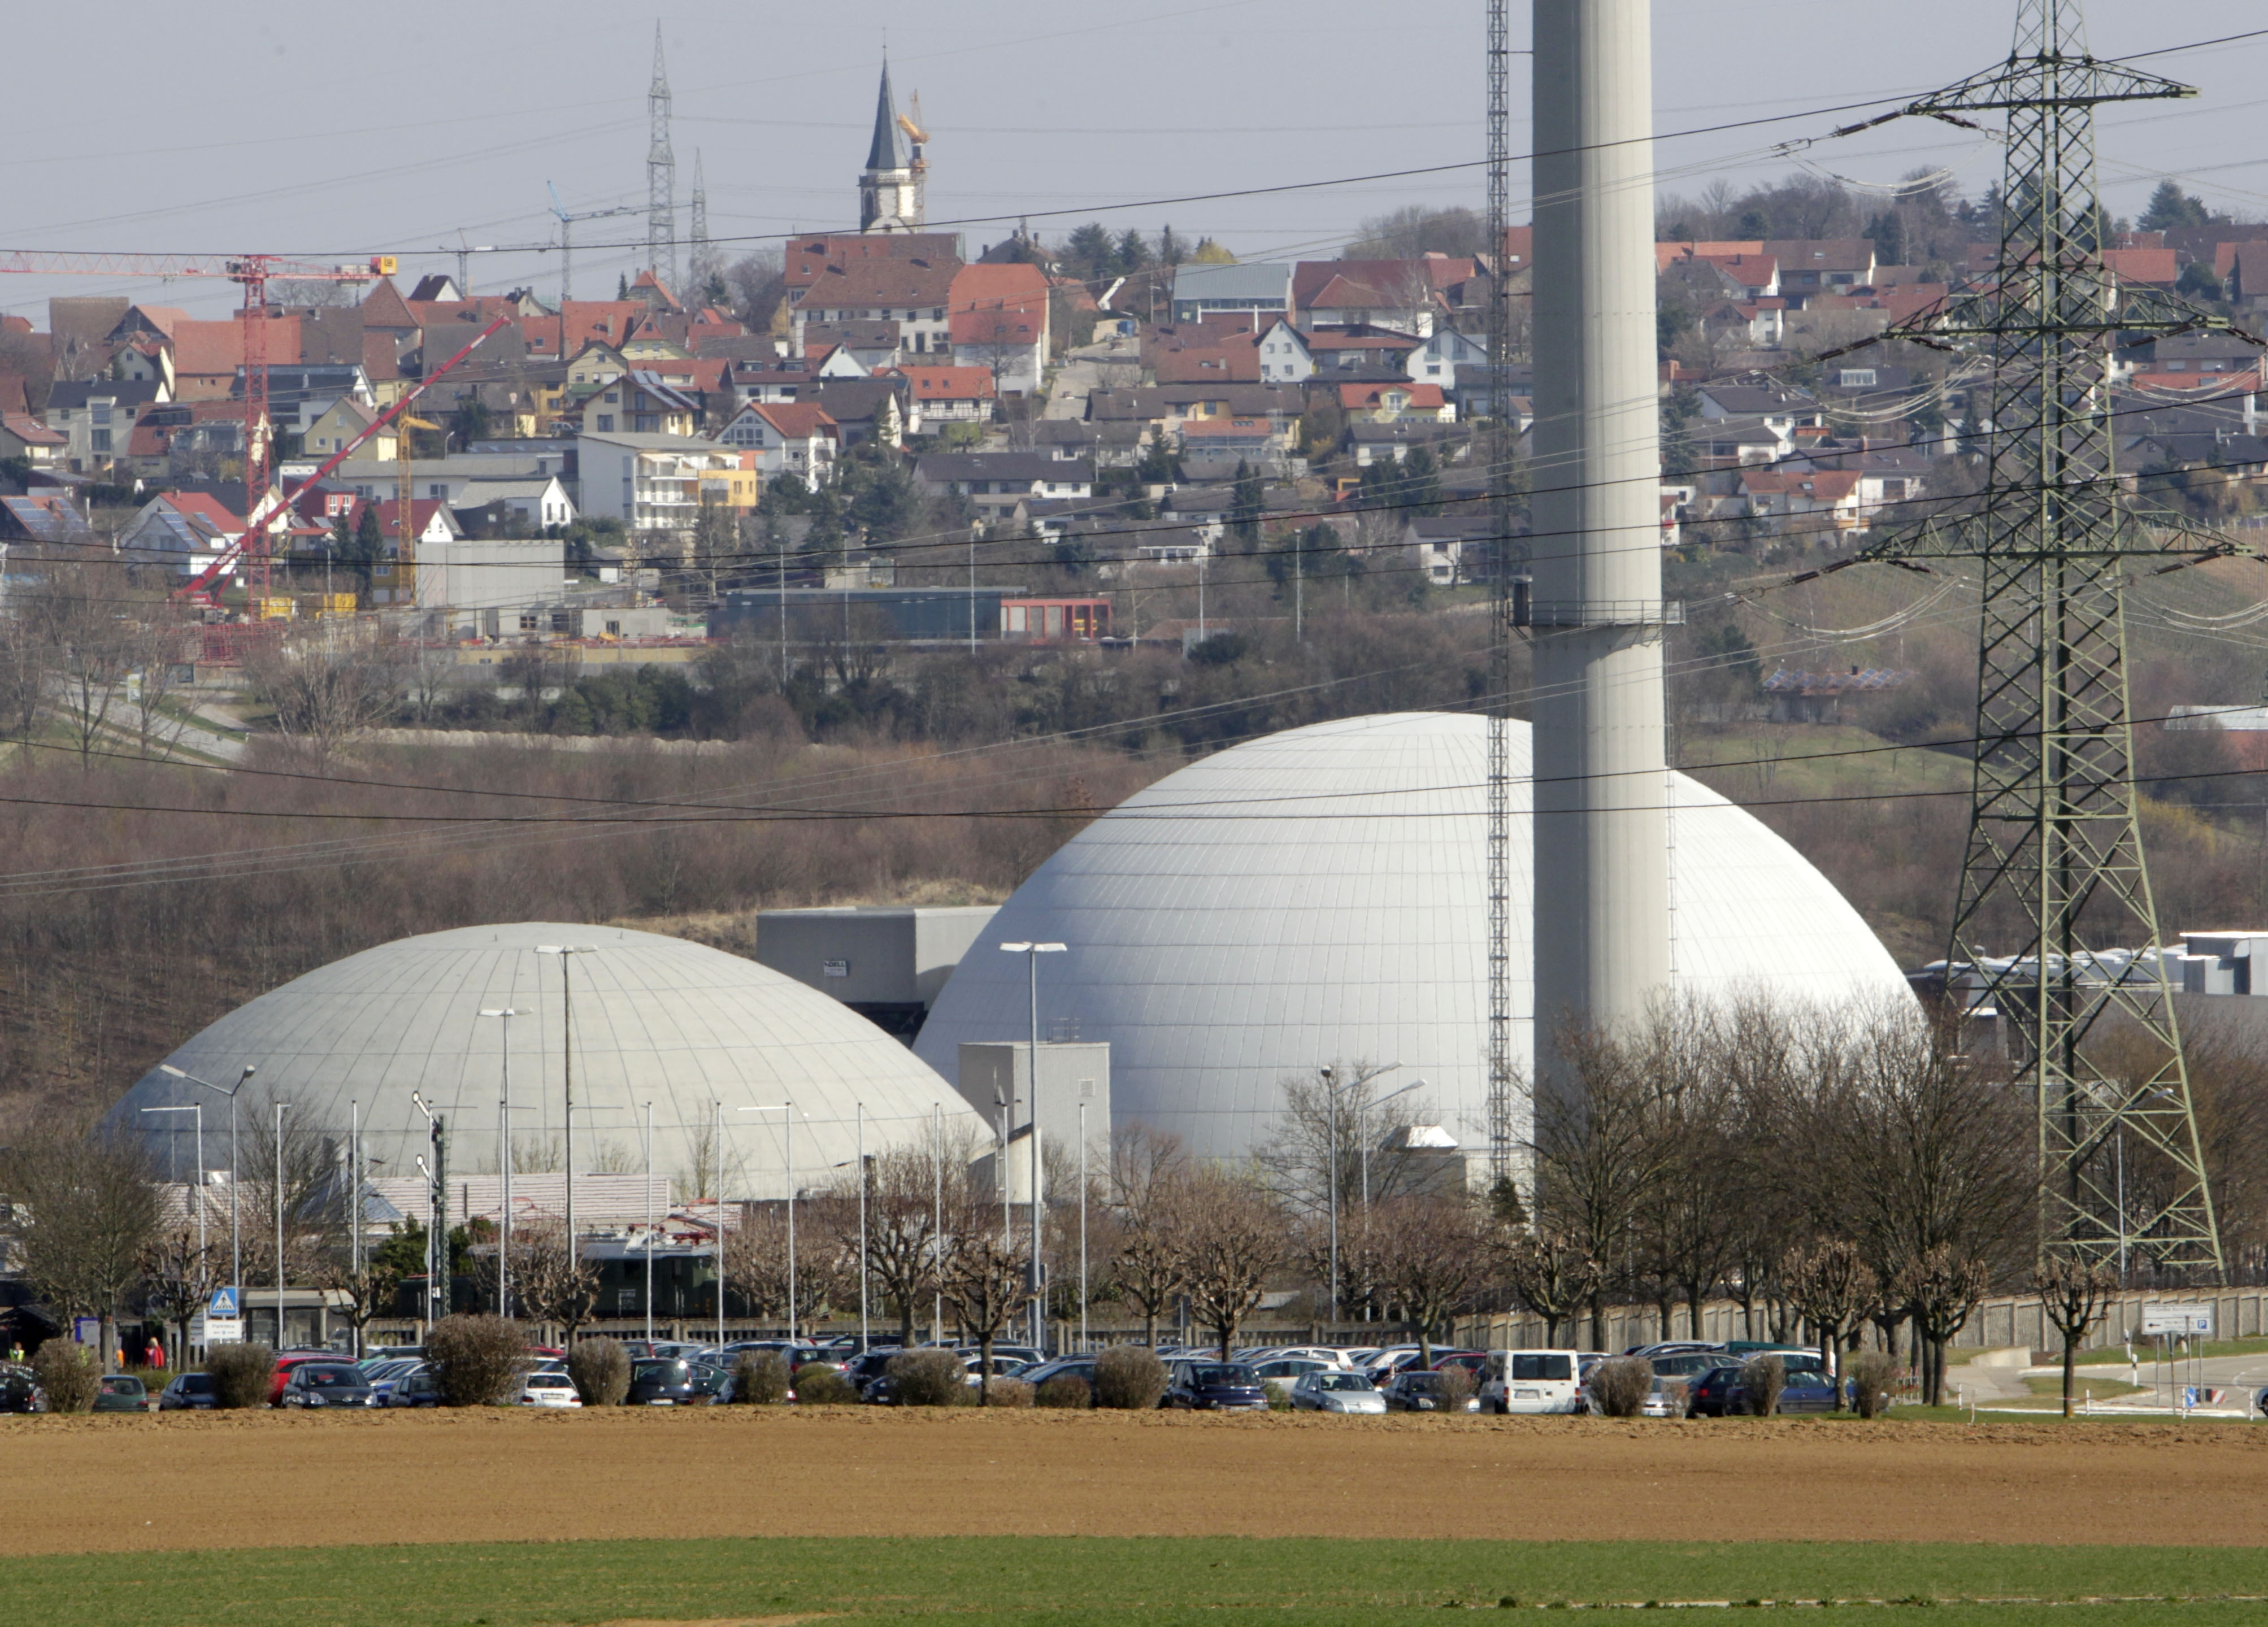 The nuclear plant of Neckarwestheim, southern Germany photographed in March. Germany's environment minister said Monday, May 30, 2011, that Chancellor Angela Merkel's coalition government has agreed to shut down all of the country's nuclear power plants by 2022.